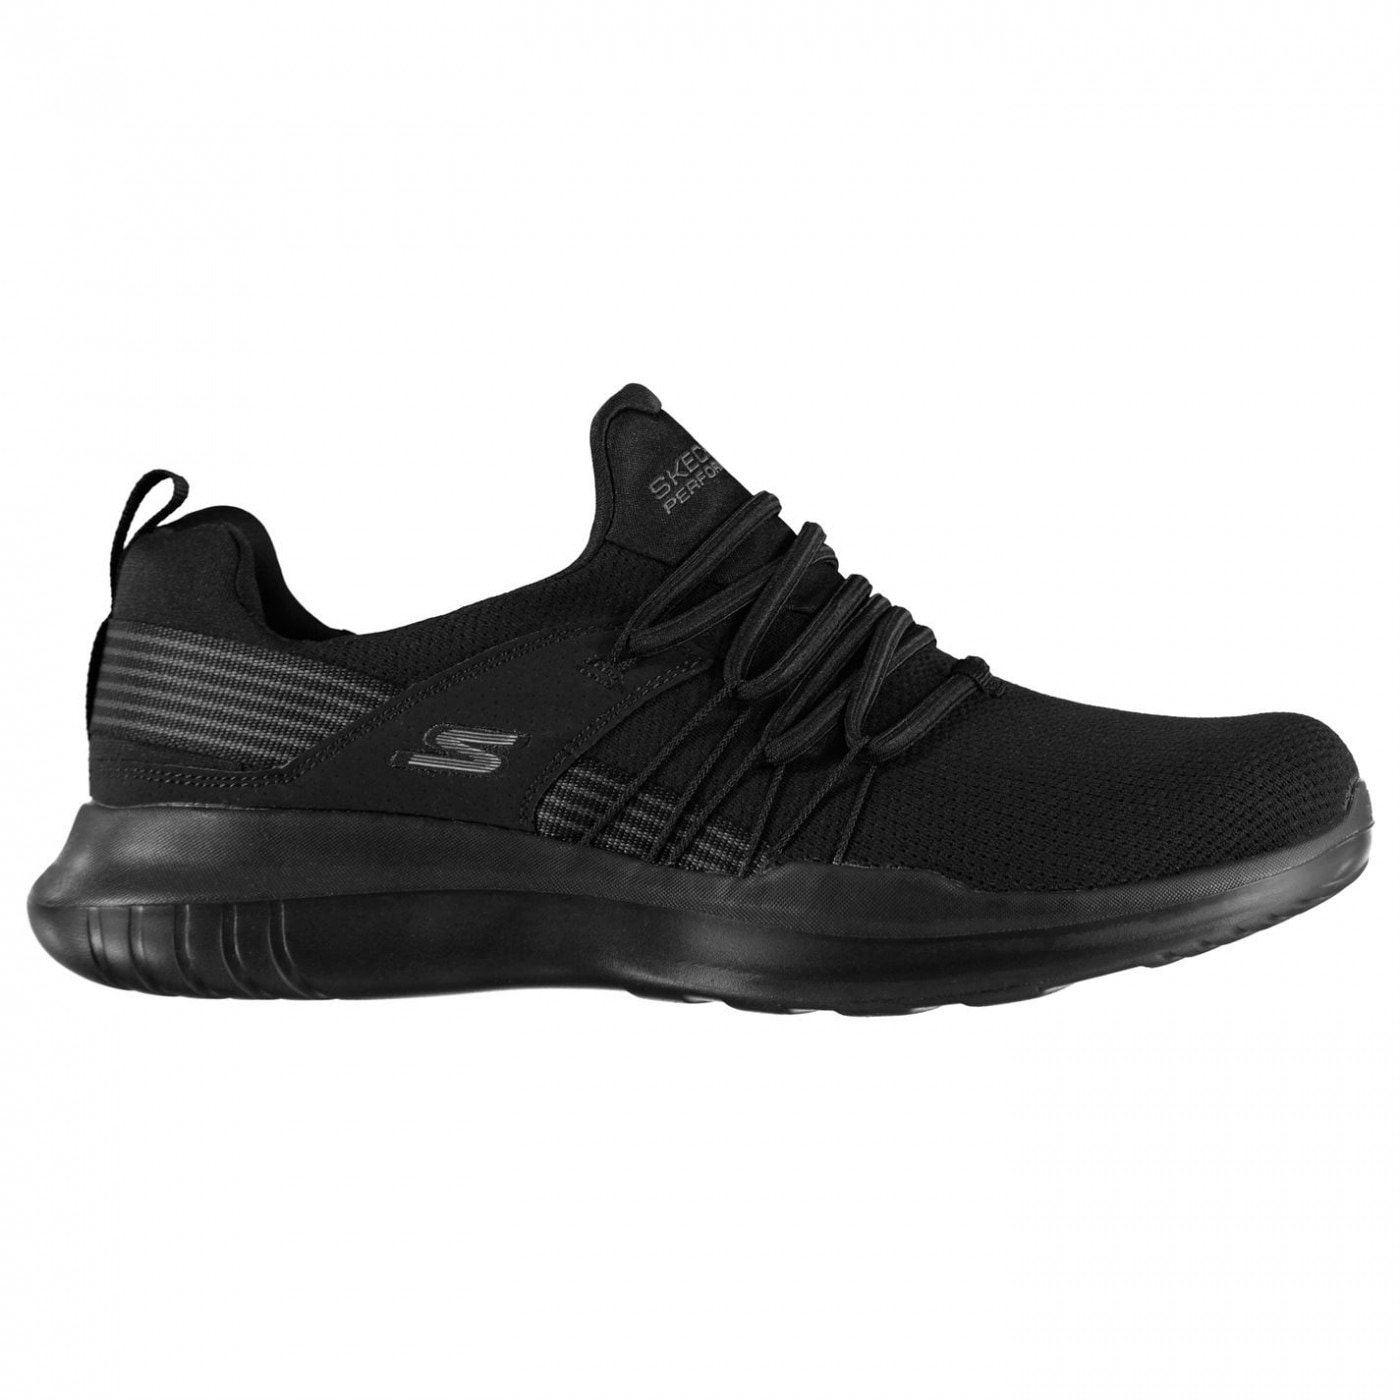 Skechers GRM React Trainers Mens